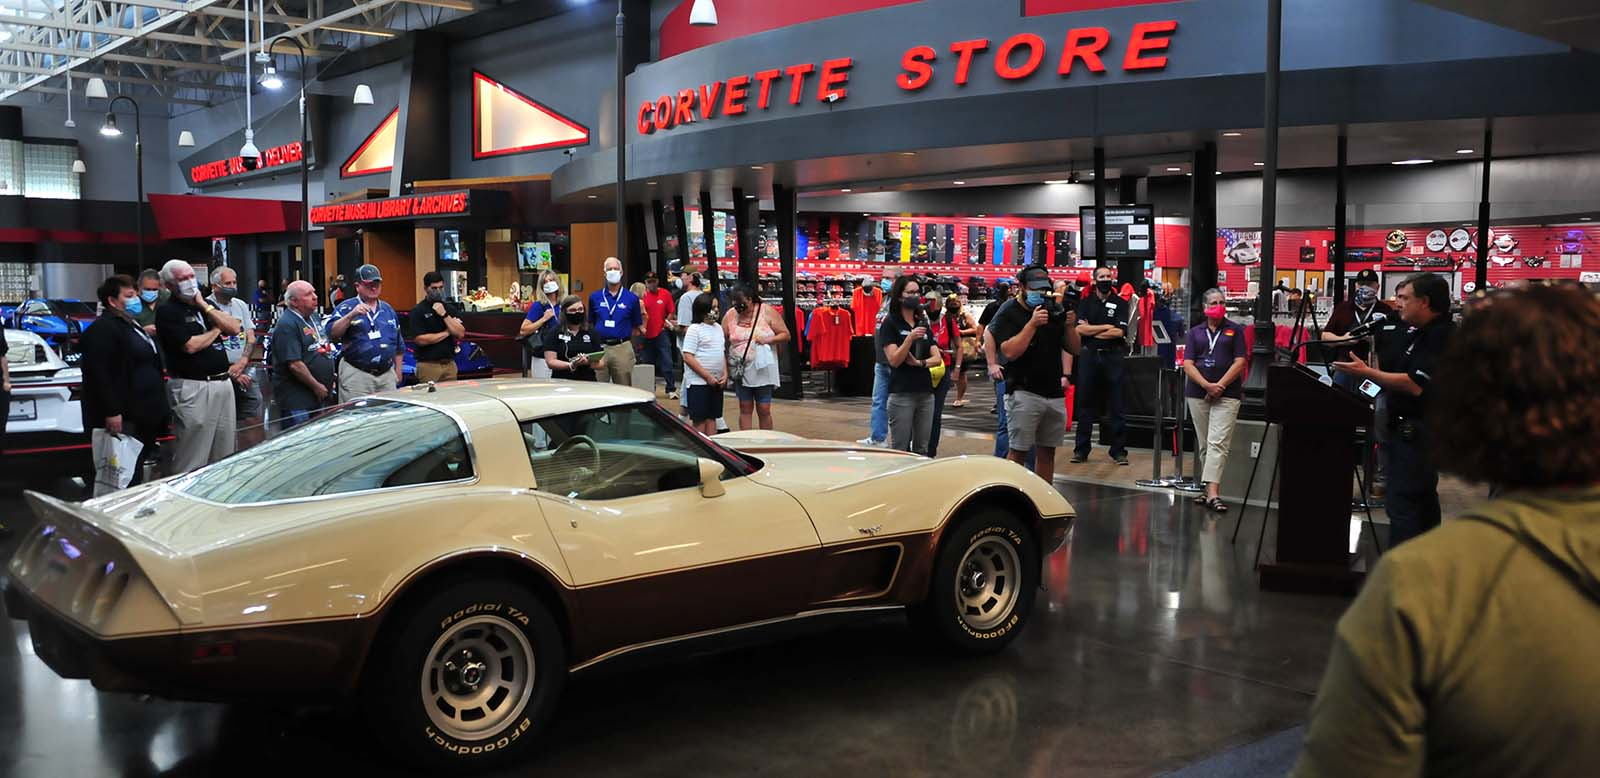 Museum Acquires 1978 Corvette Formerly Owned by George Jones